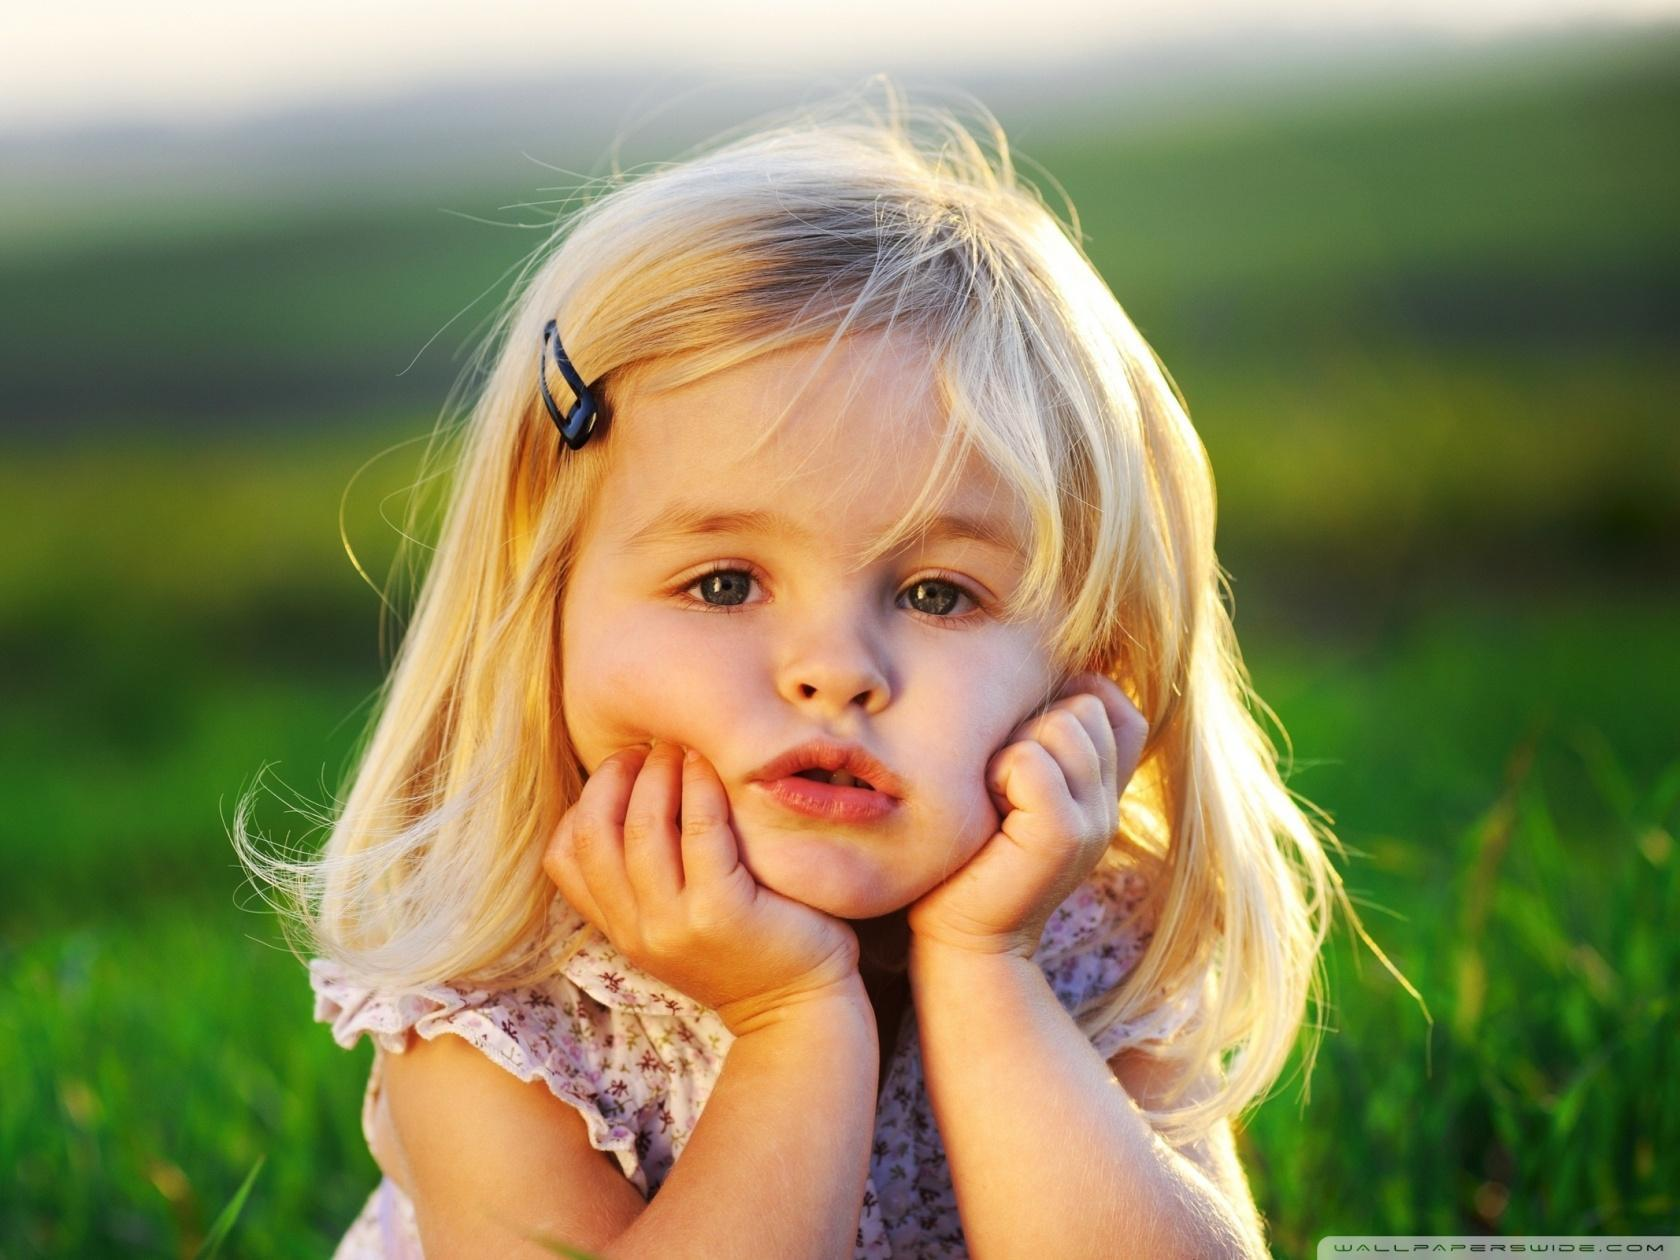 Cute Baby Girl Wallpaper for Android - APK Download